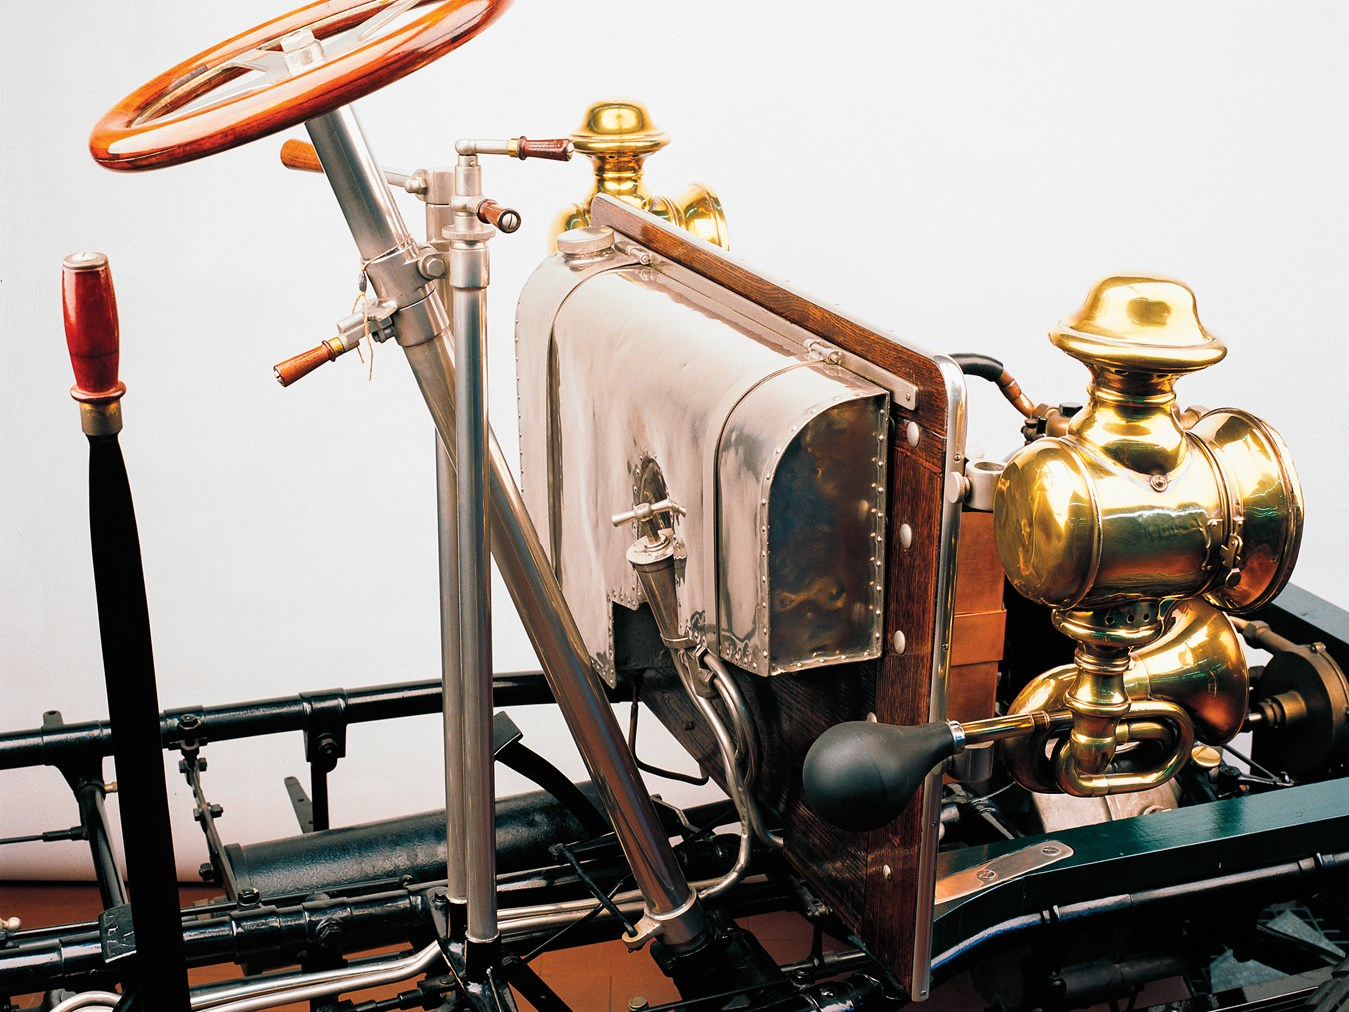 1903 De Dion-Bouton Chassis and Engine